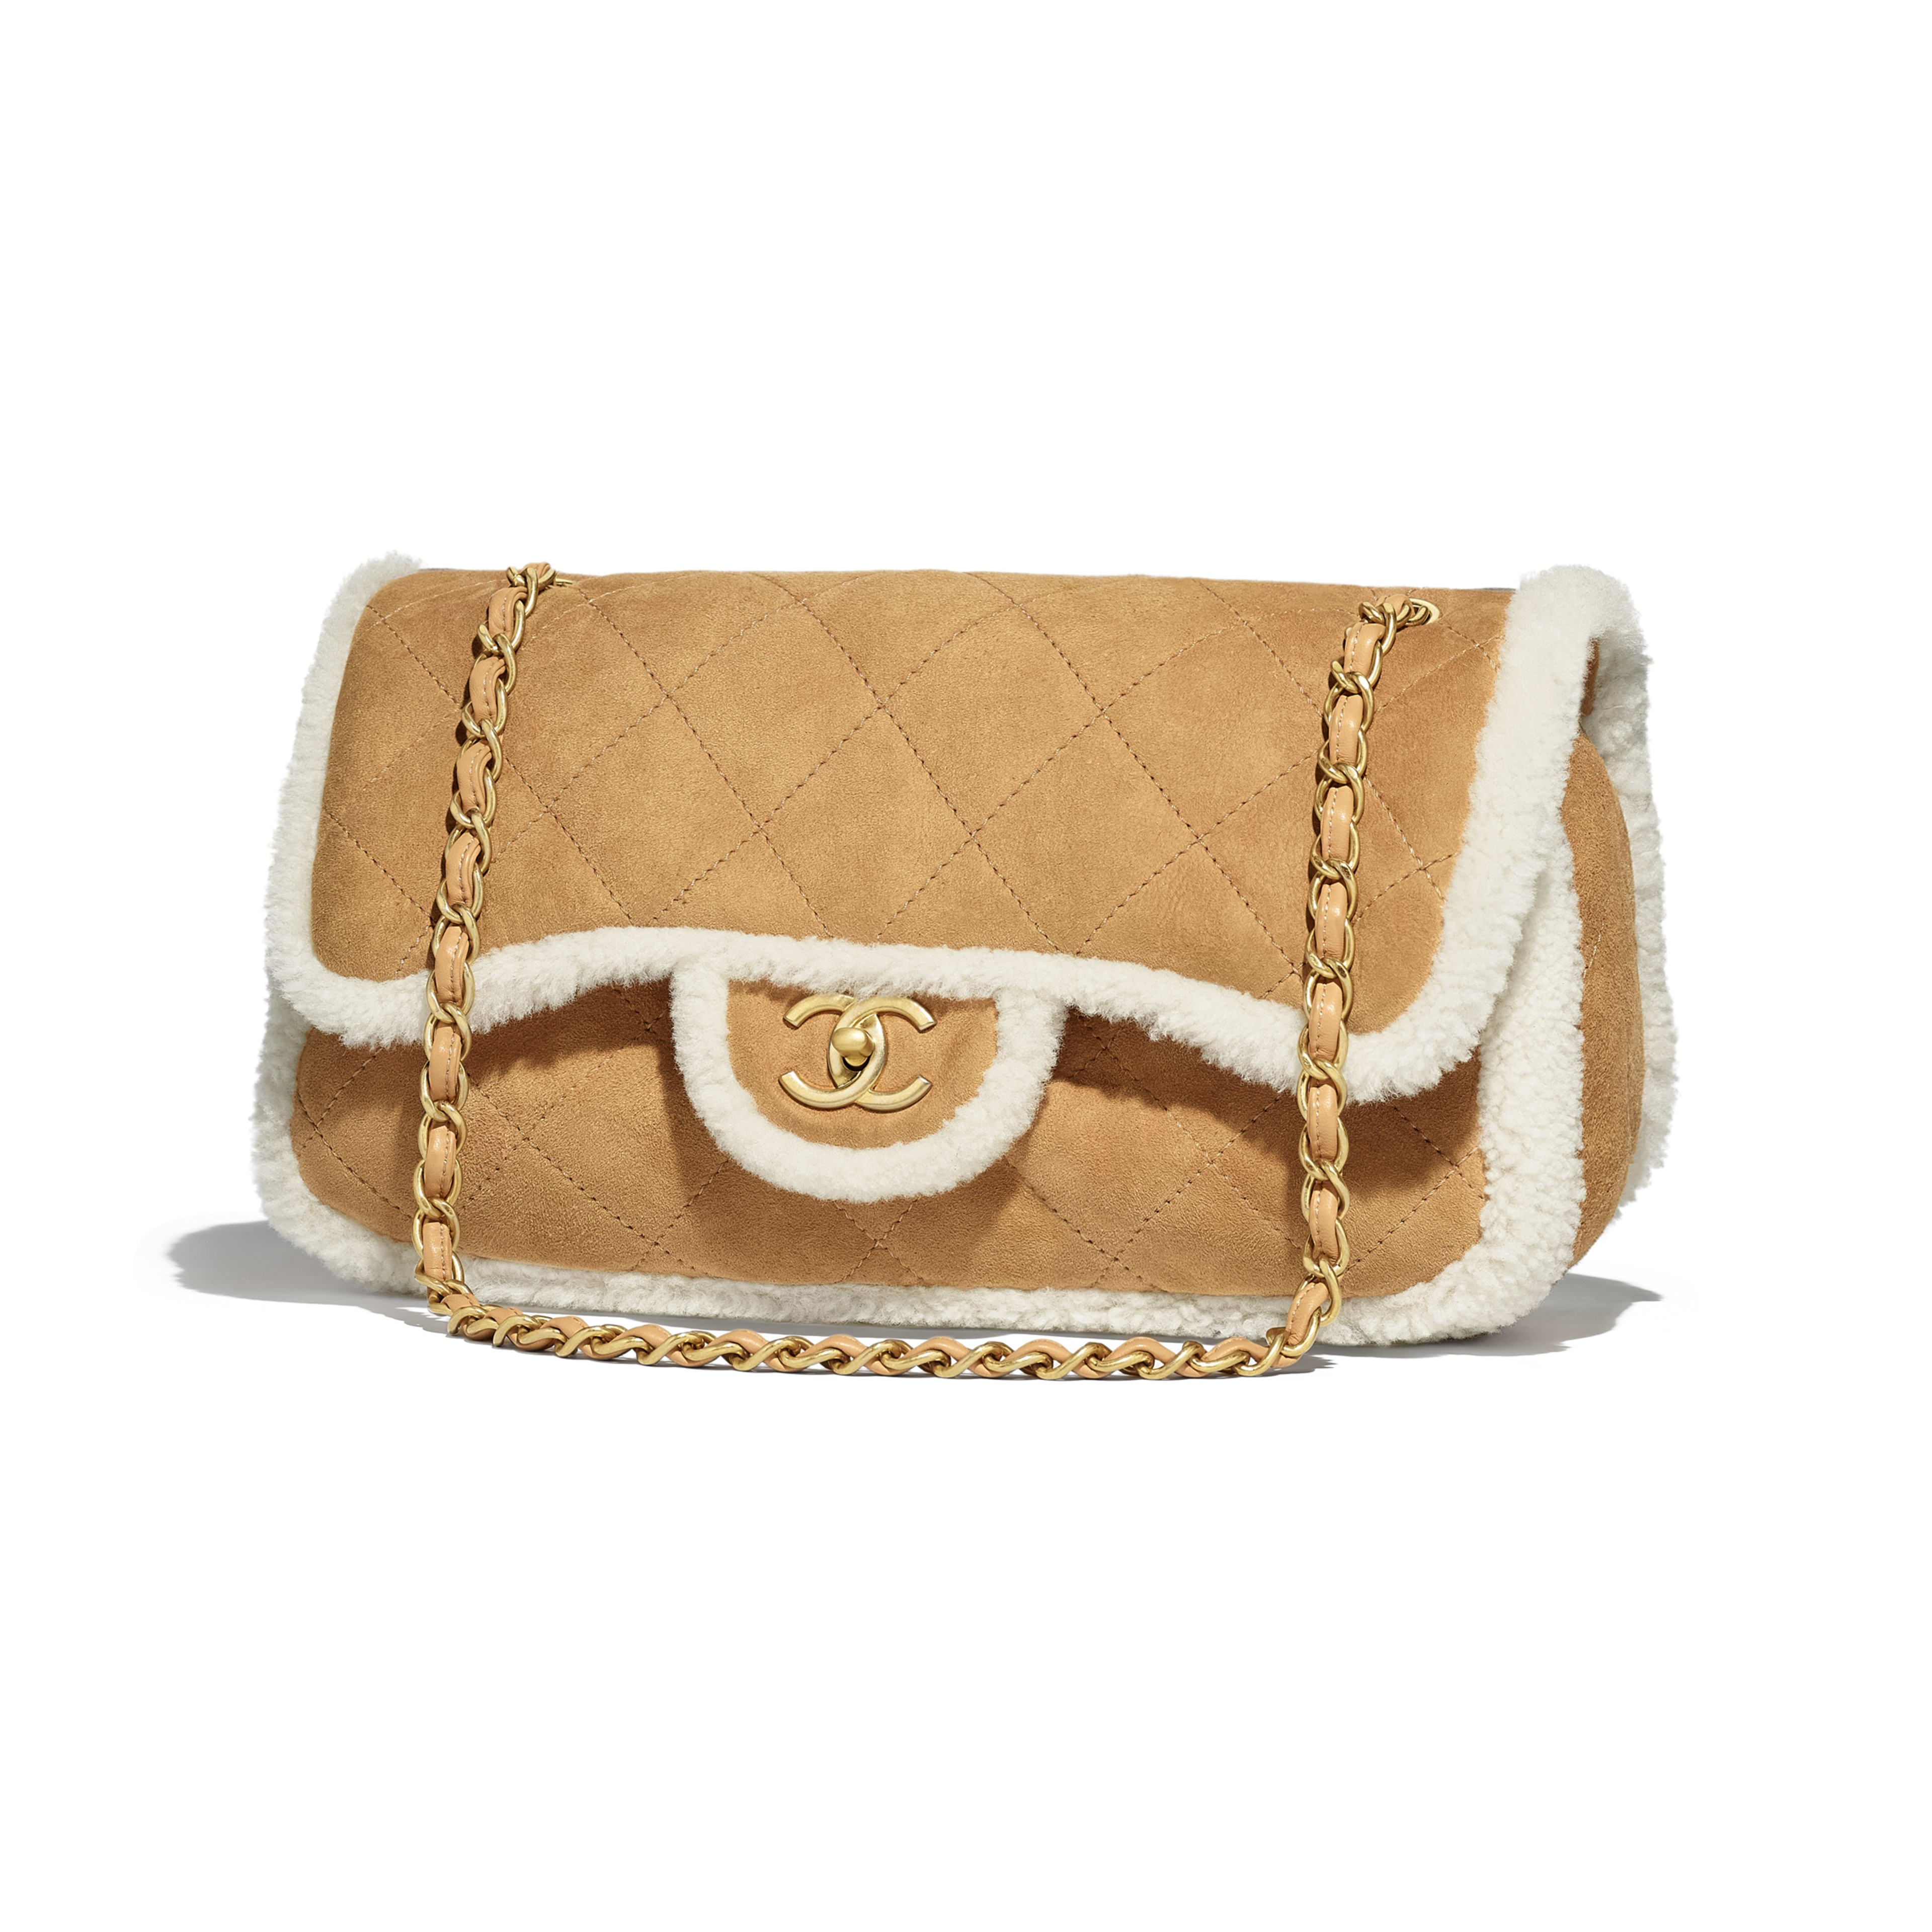 76124a0b9456 Flap Bag - Beige - Shearling Lambskin & Gold-Tone Metal - Default view -  see full sized version